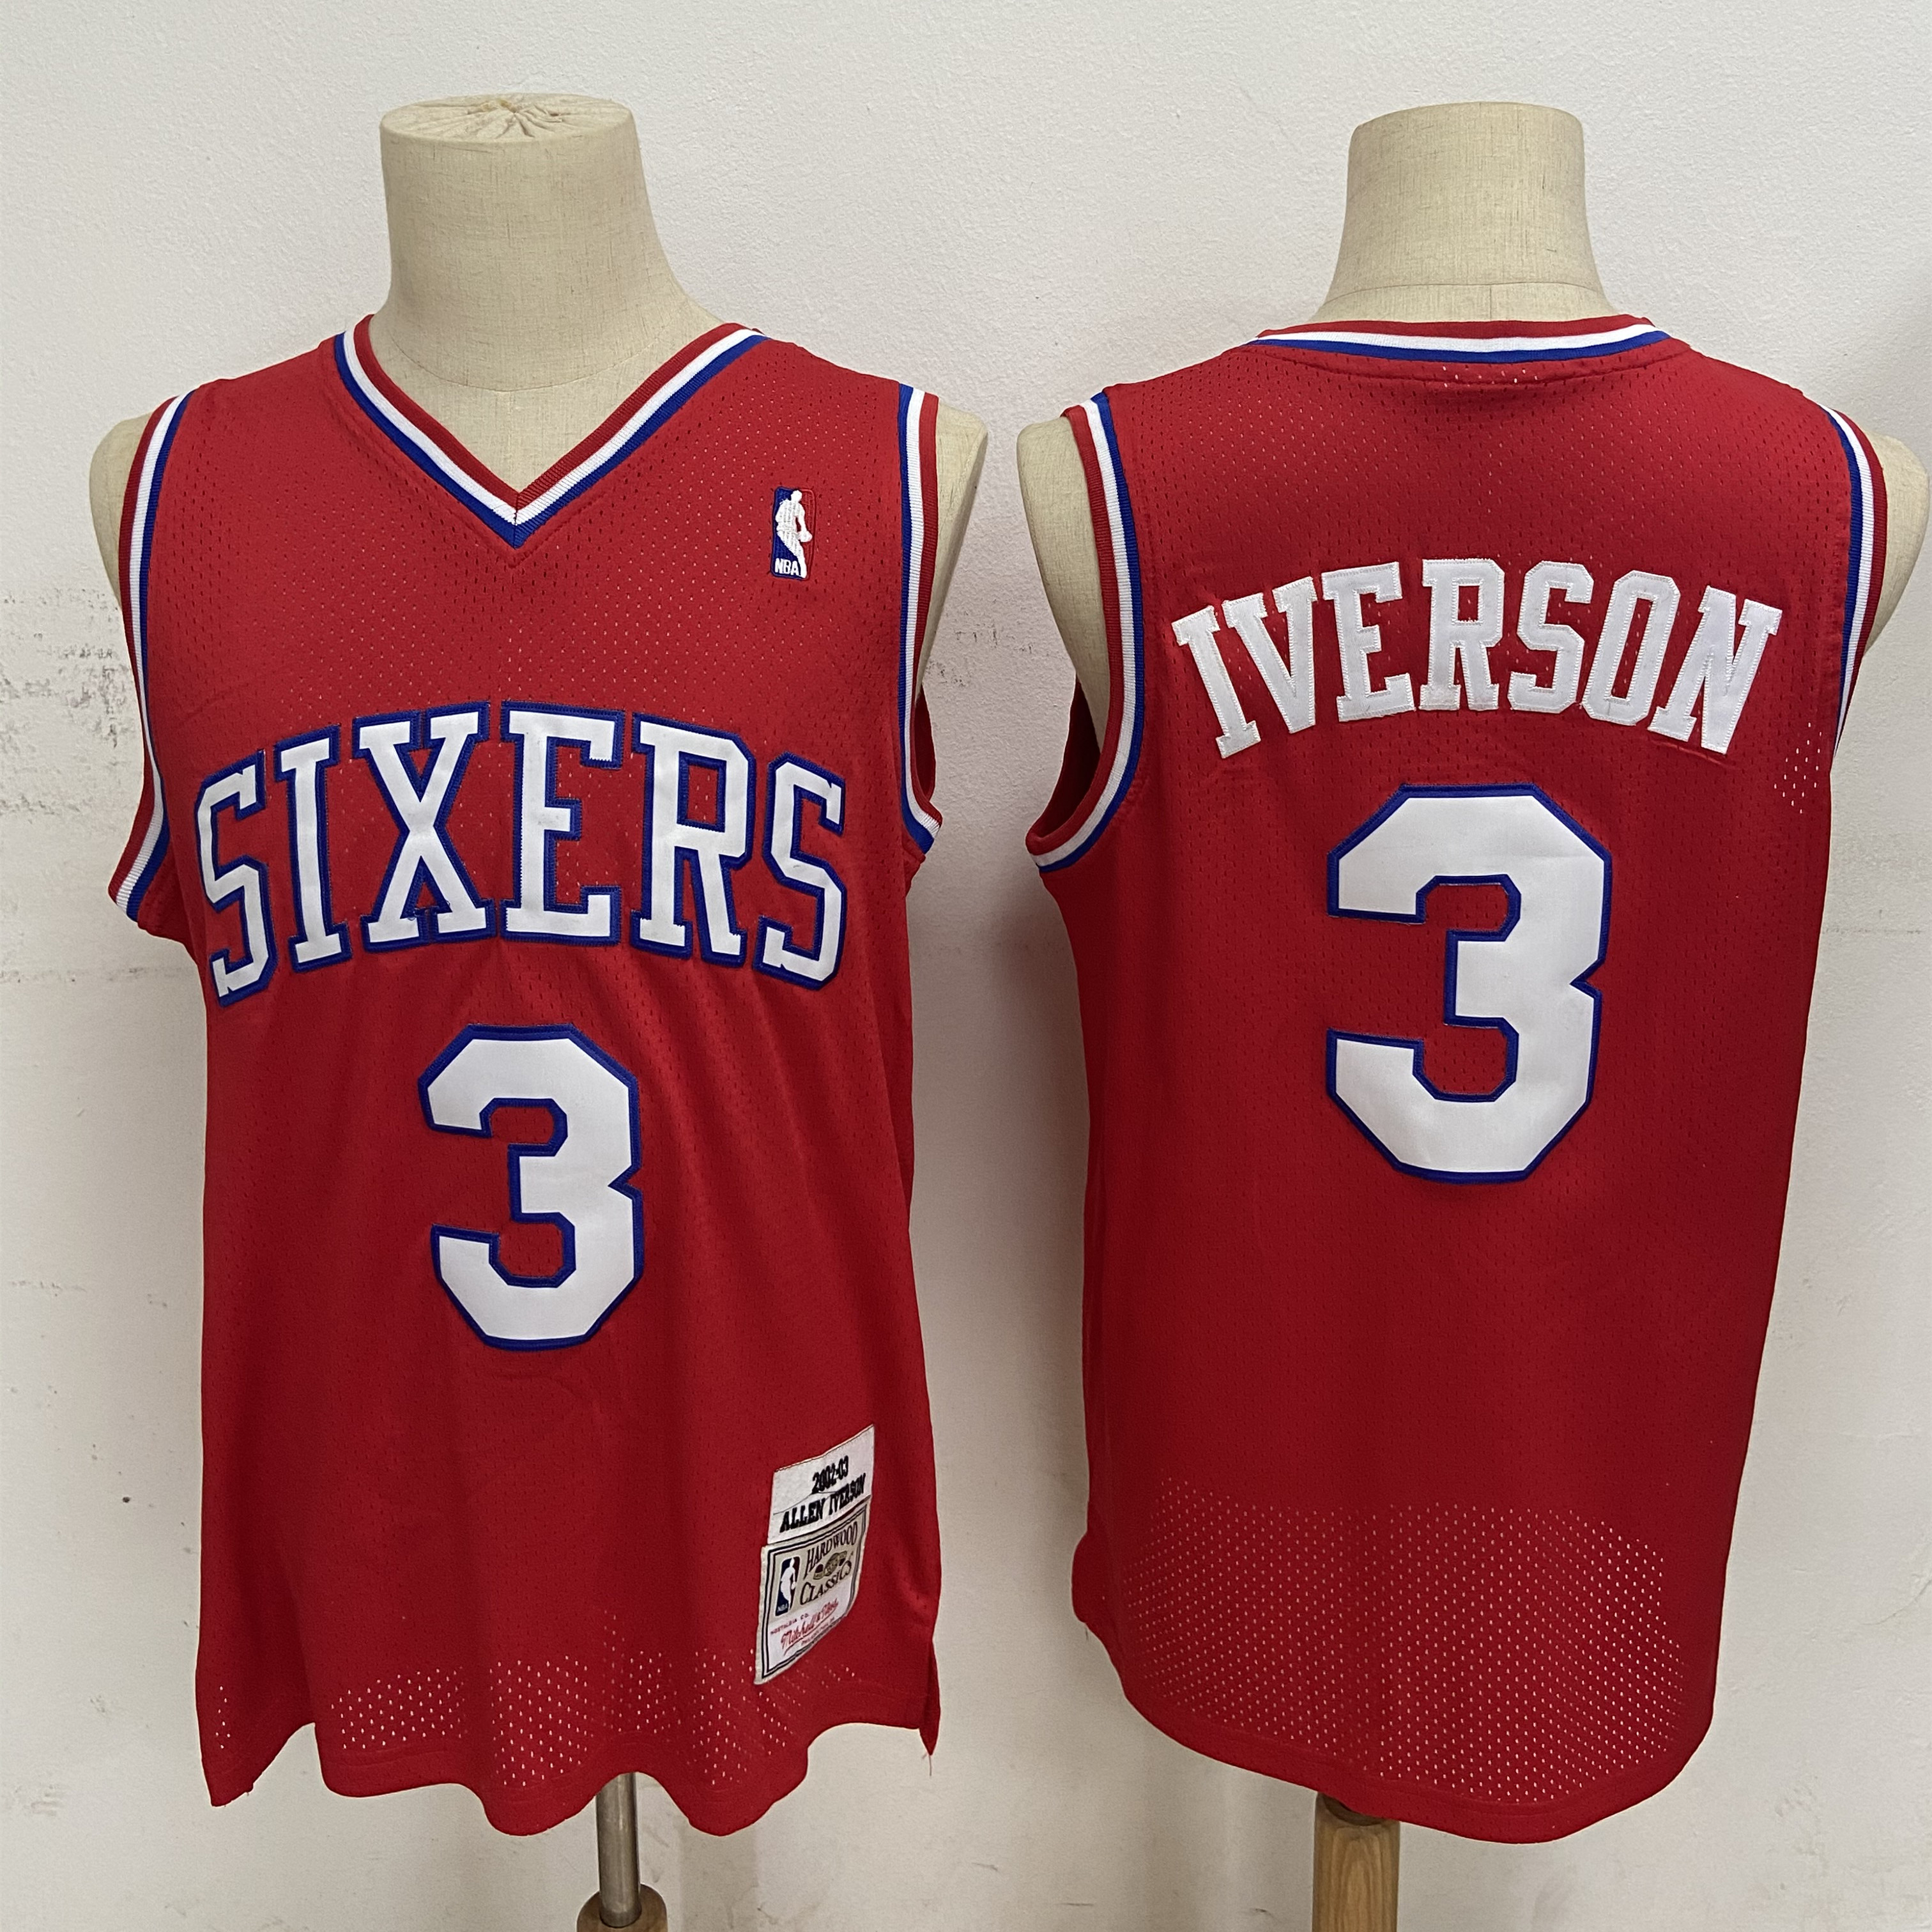 76ers 3 Allen Iverson Red 2002-03 Hardwood Classics Jersey